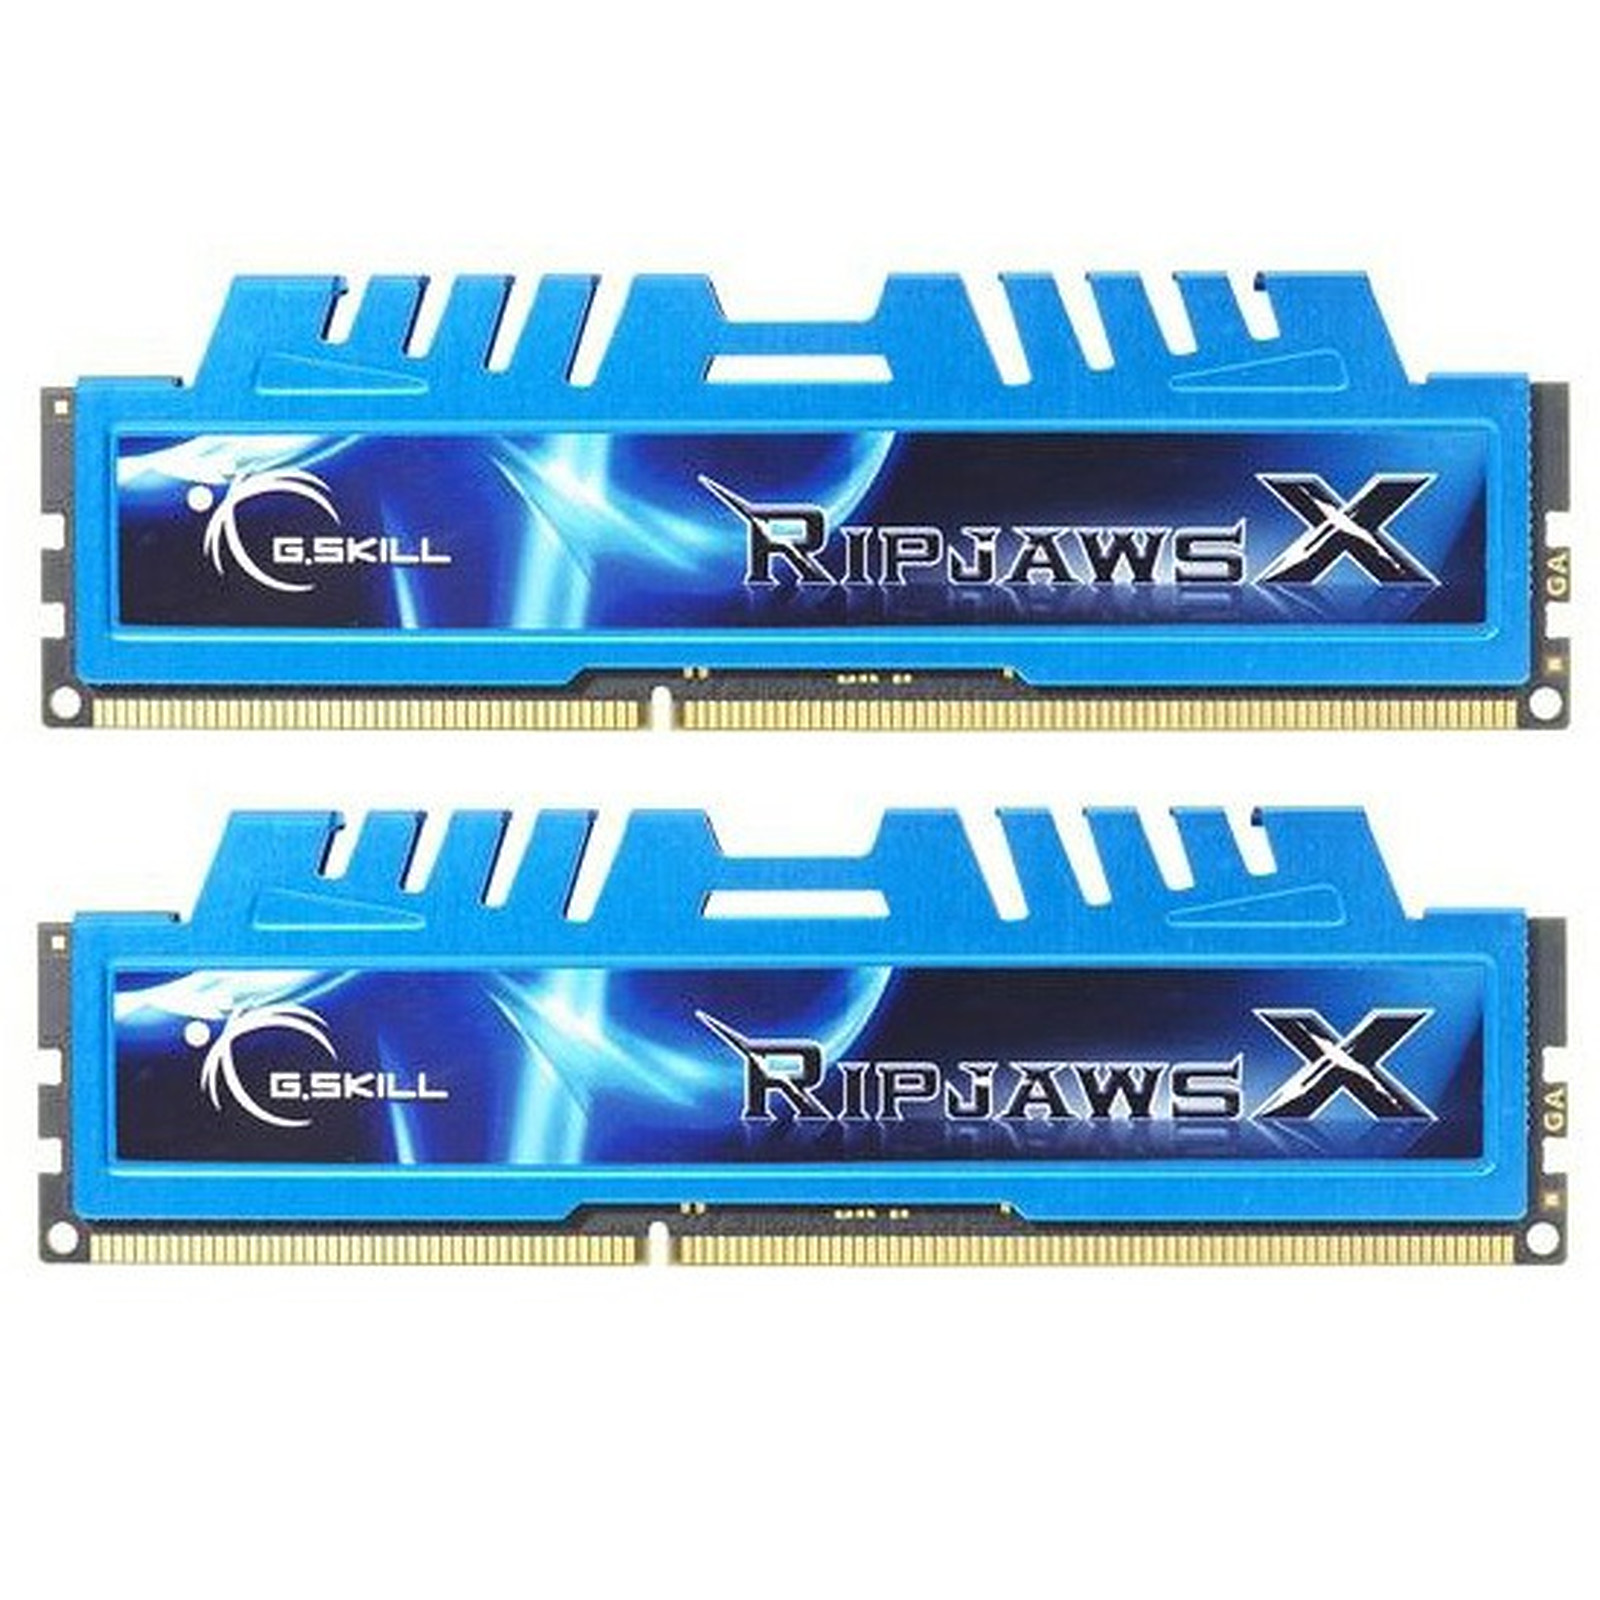 G.Skill XM Series RipJaws X Series 16 Go (kit 2 x 8 Go) DDR3 1600 MHz CL9